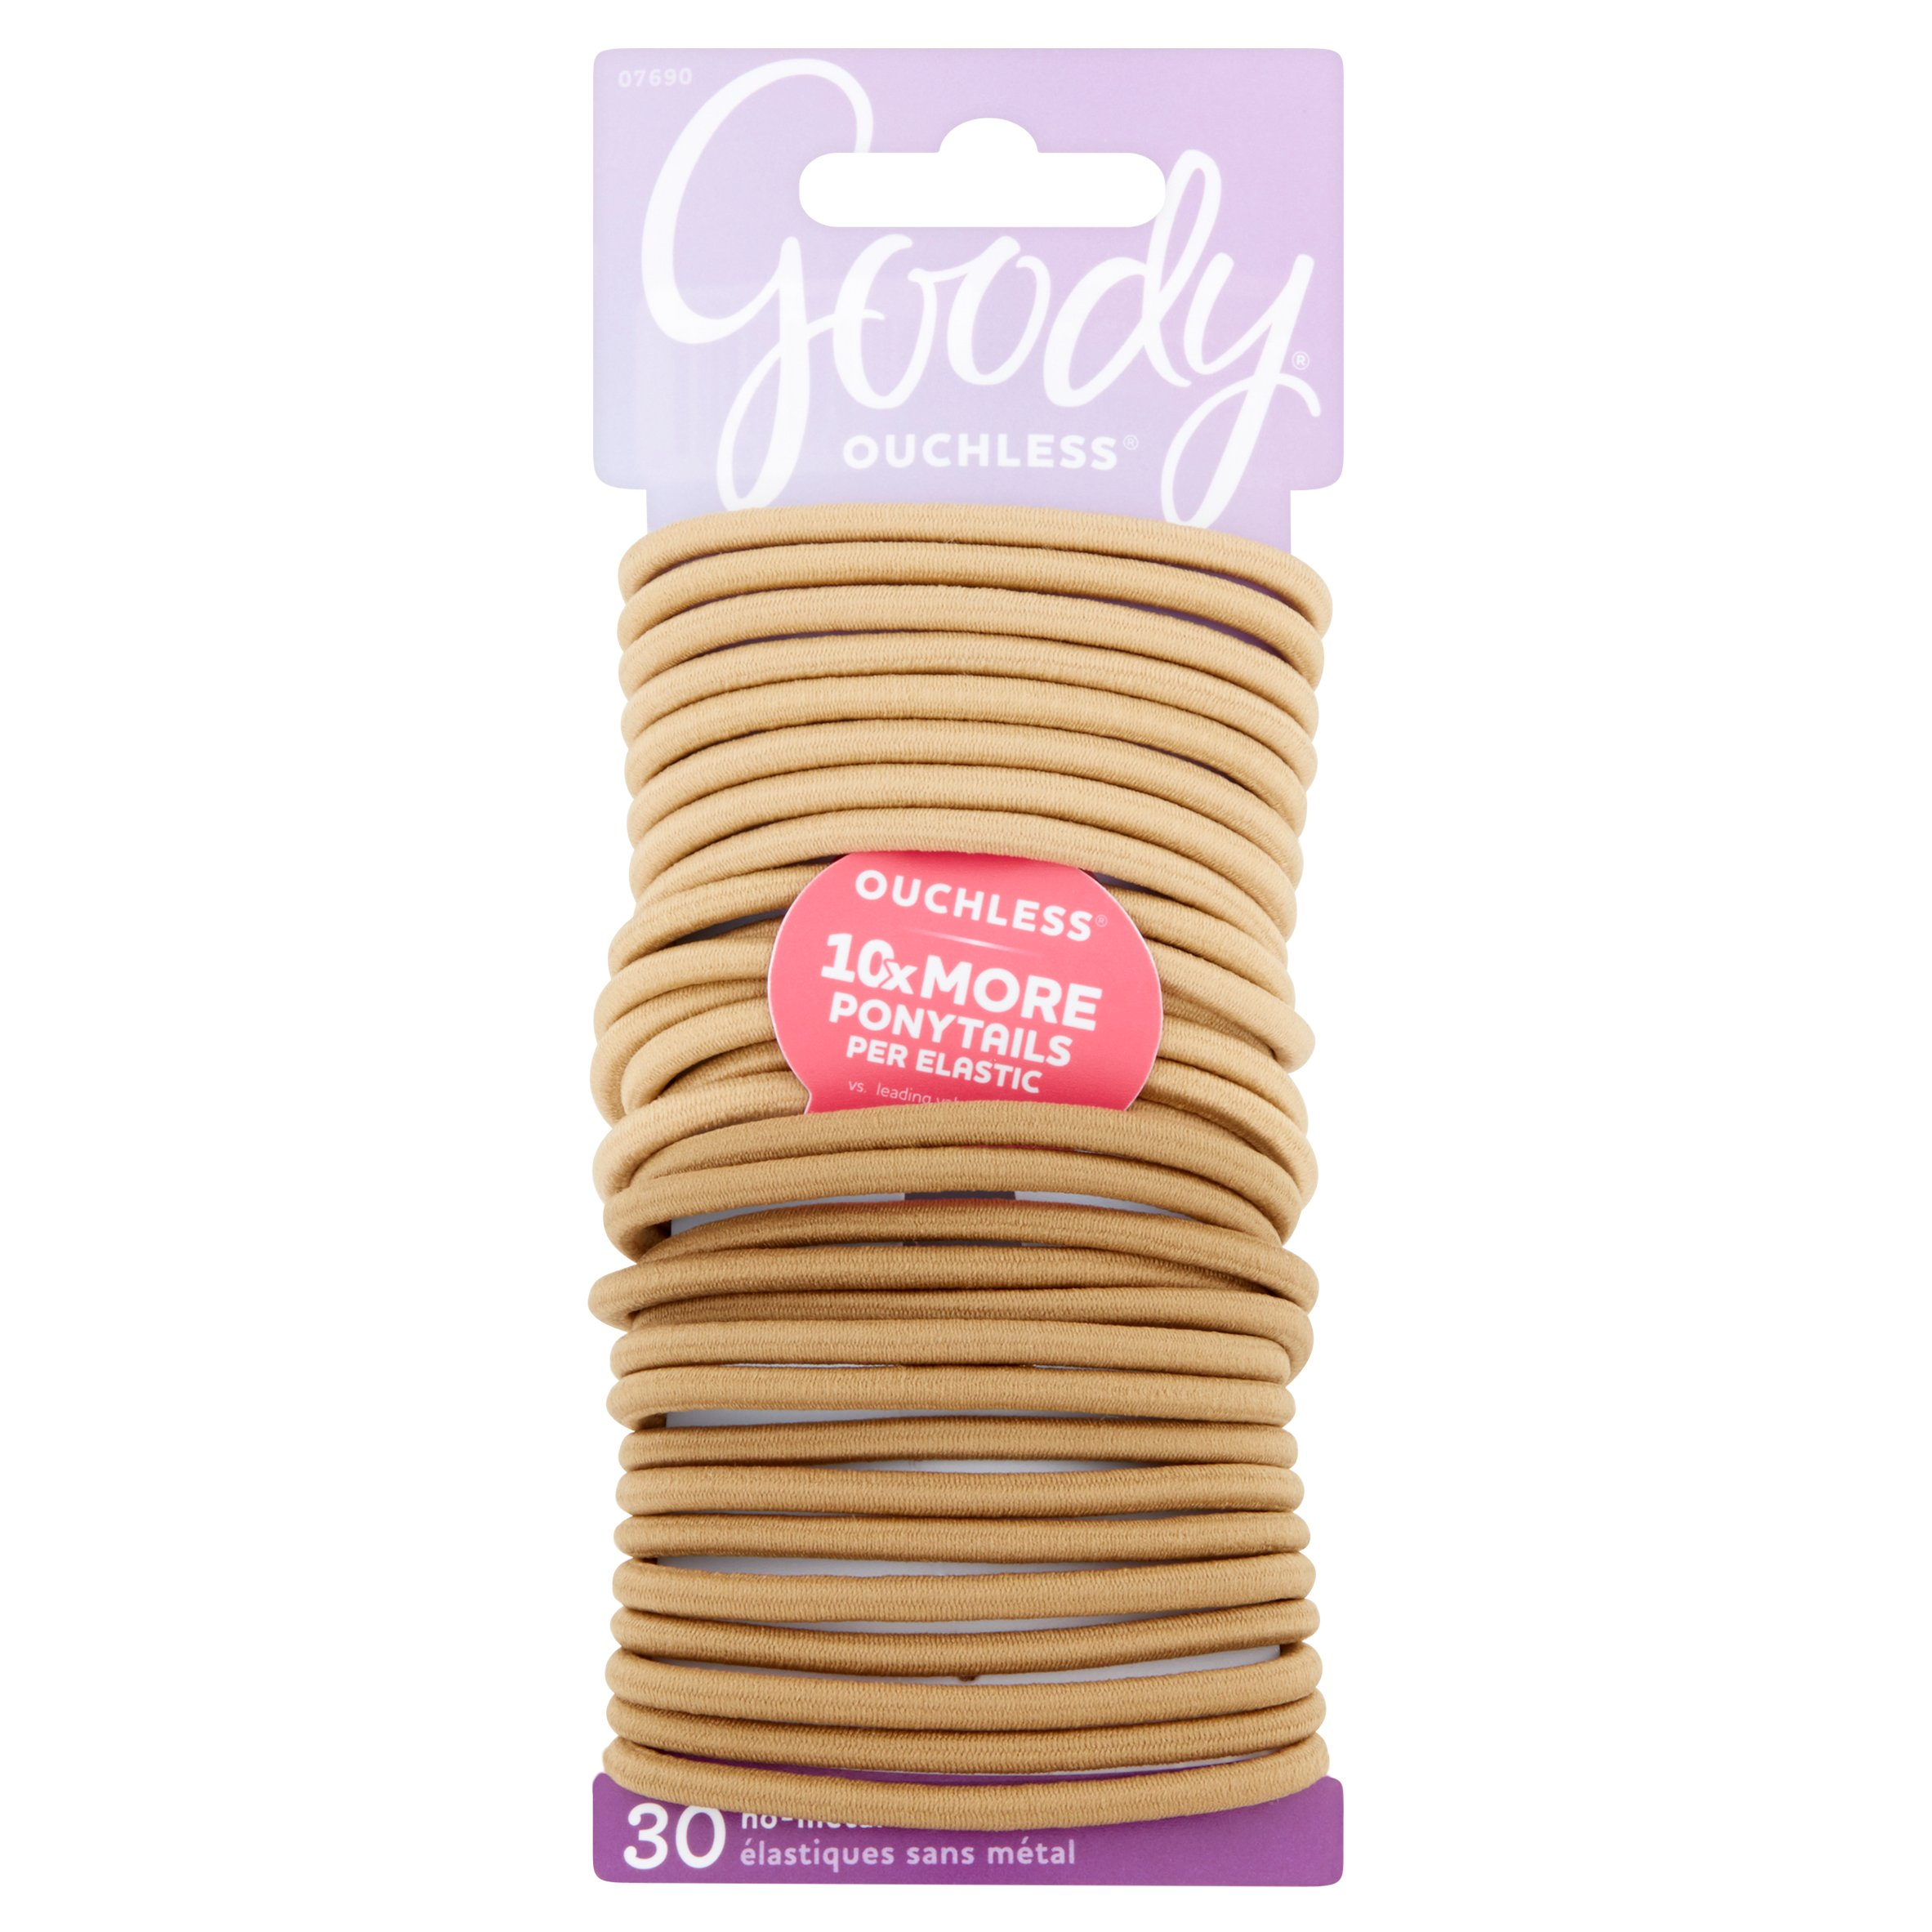 (2 Pack) Goody Ouchless Elastics, Blonde, 30 count